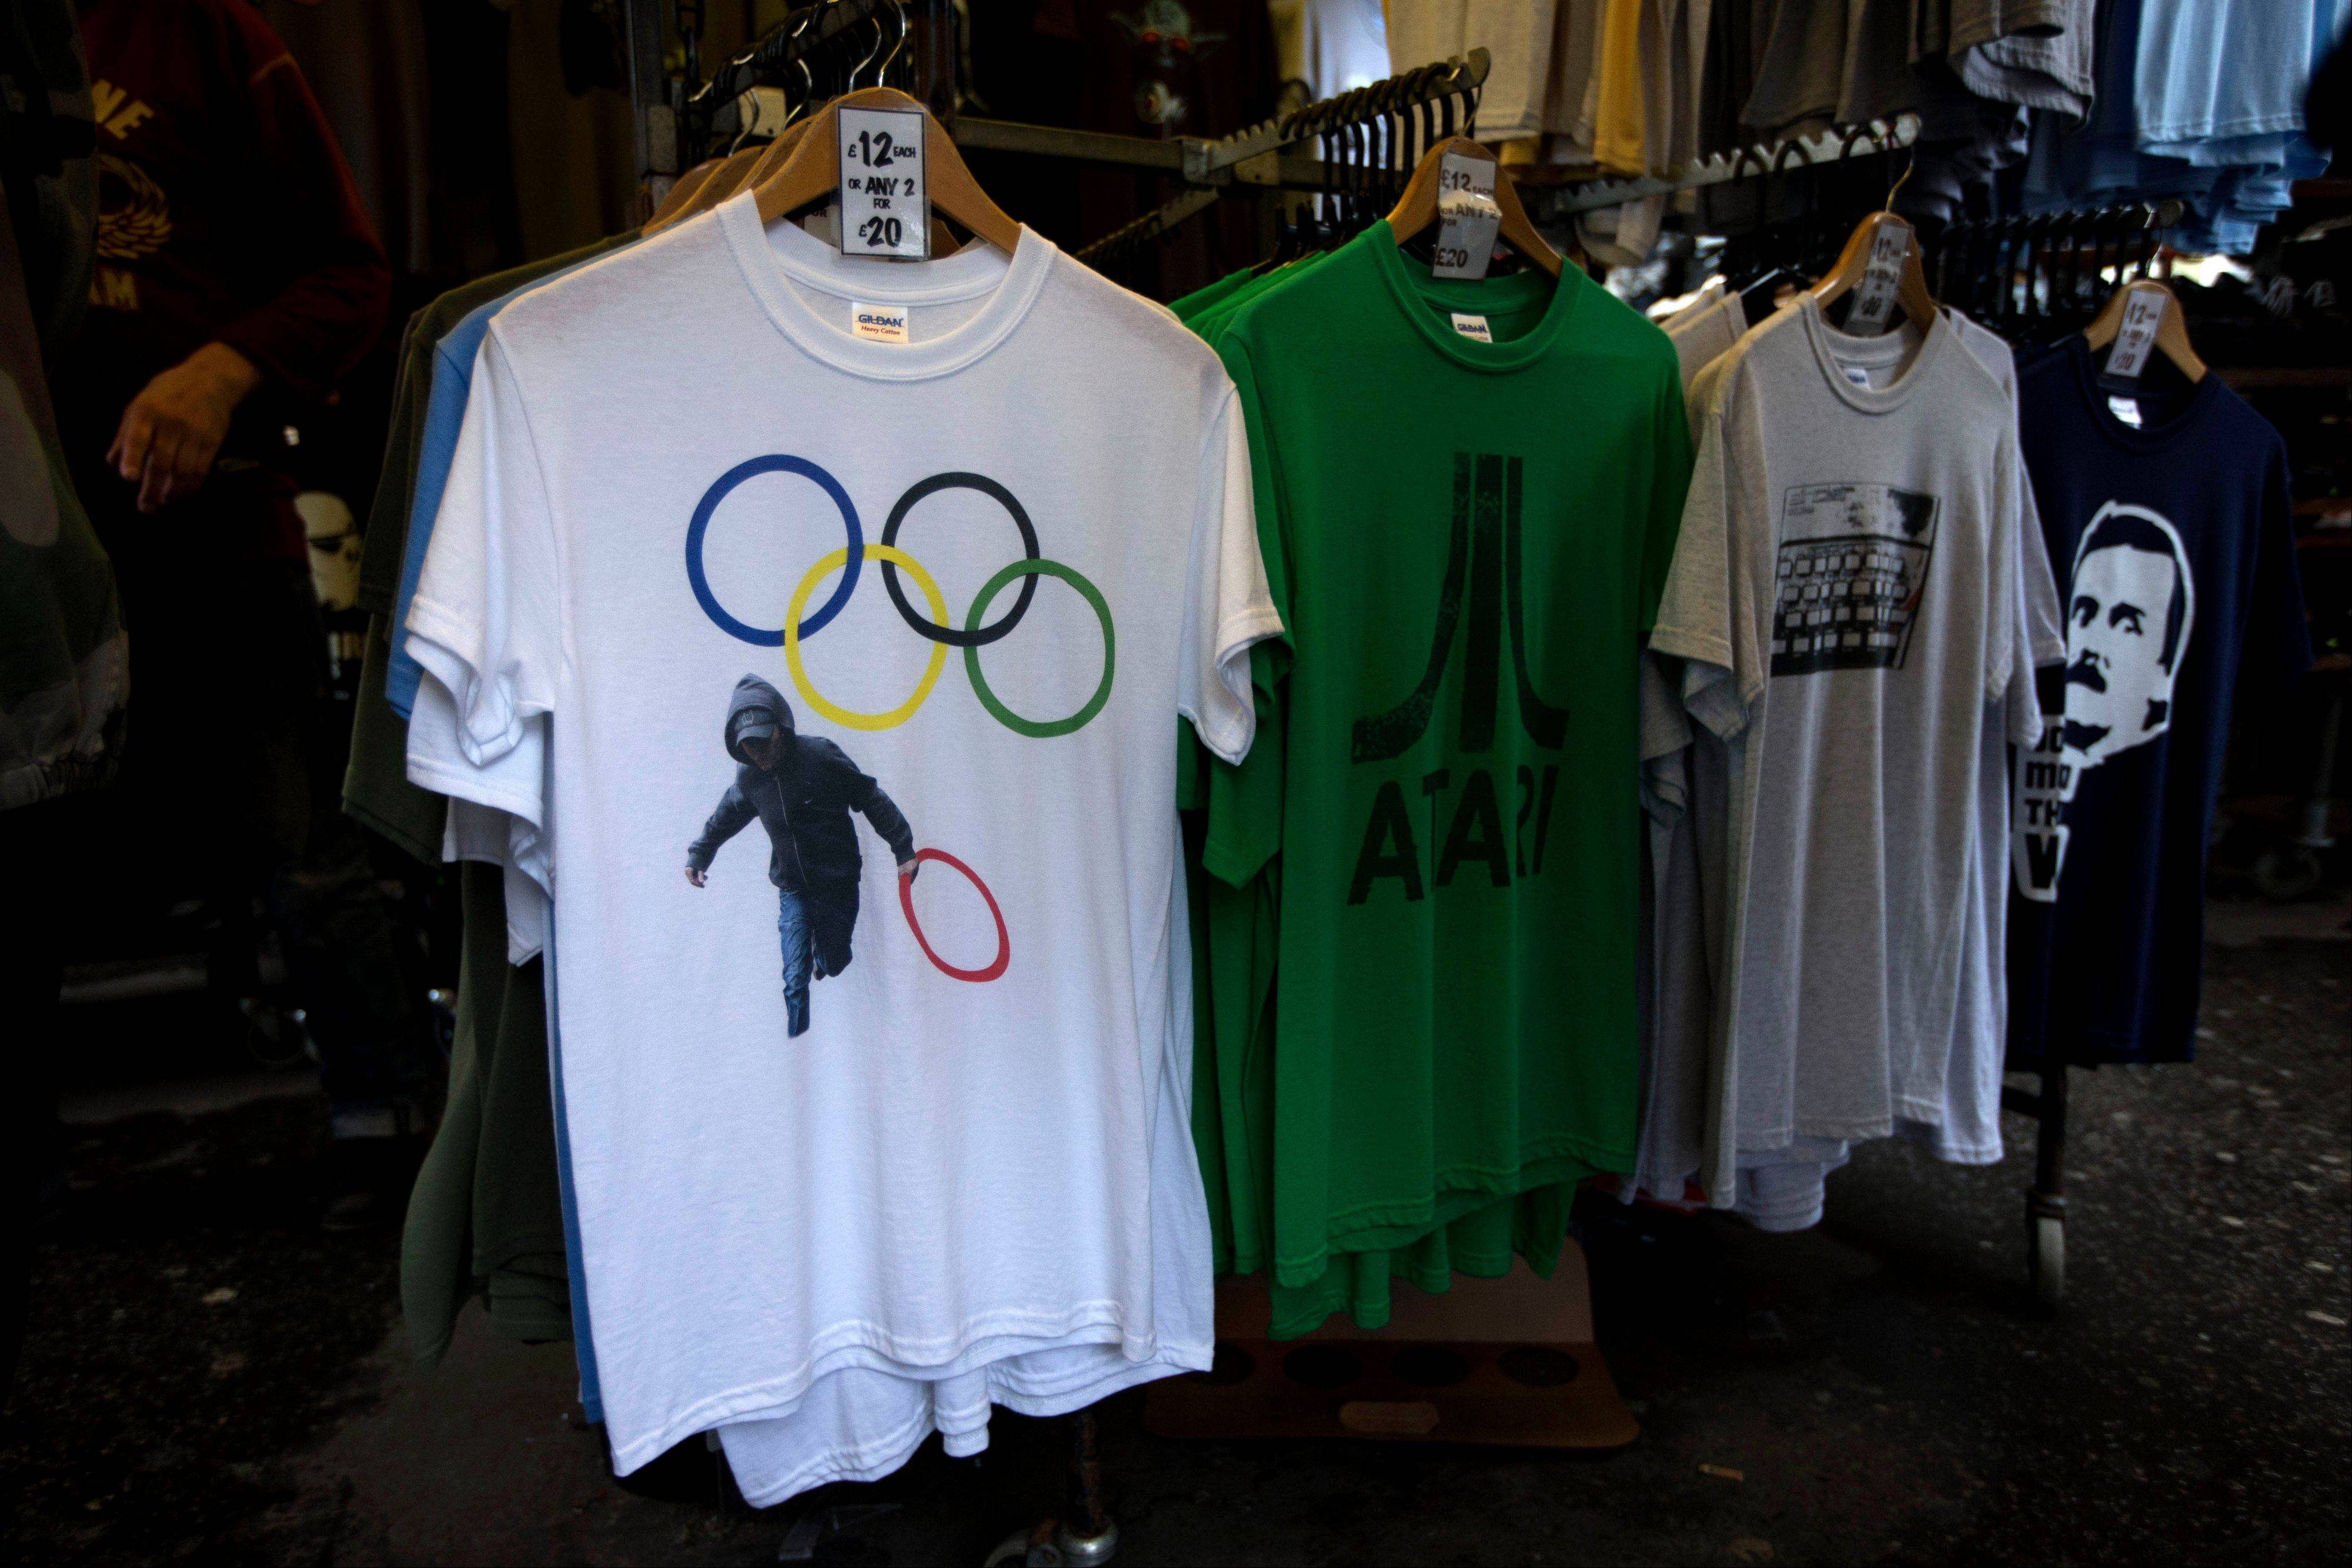 Olympics satire: Watch out for the brand police